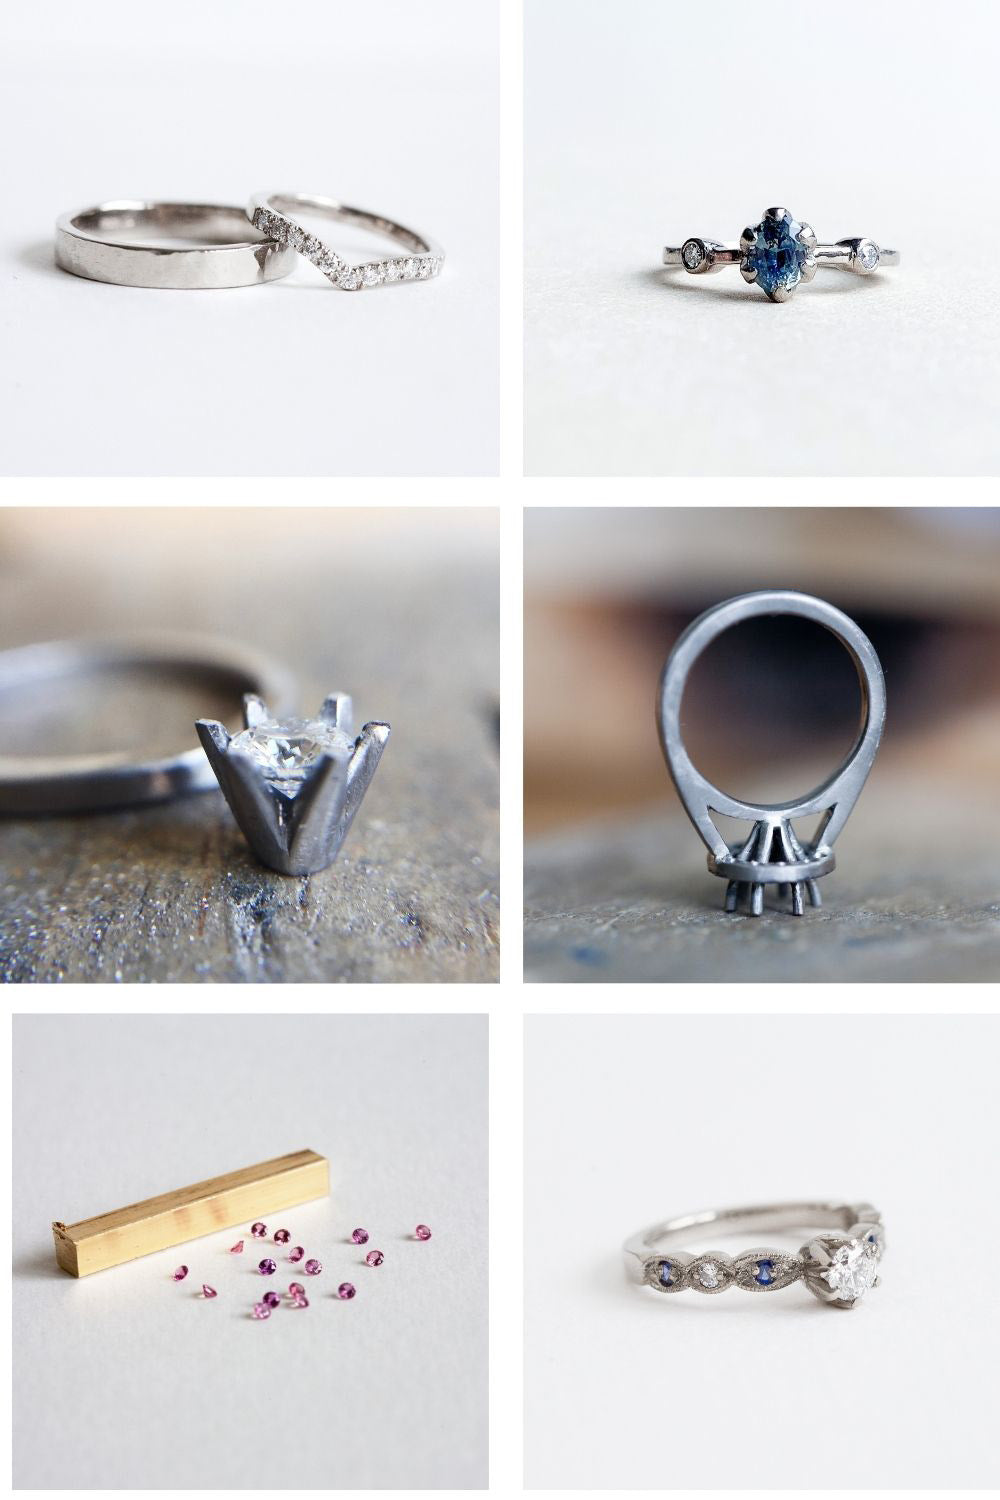 Selection of bespoke designs from Audrey Claude Jewellery